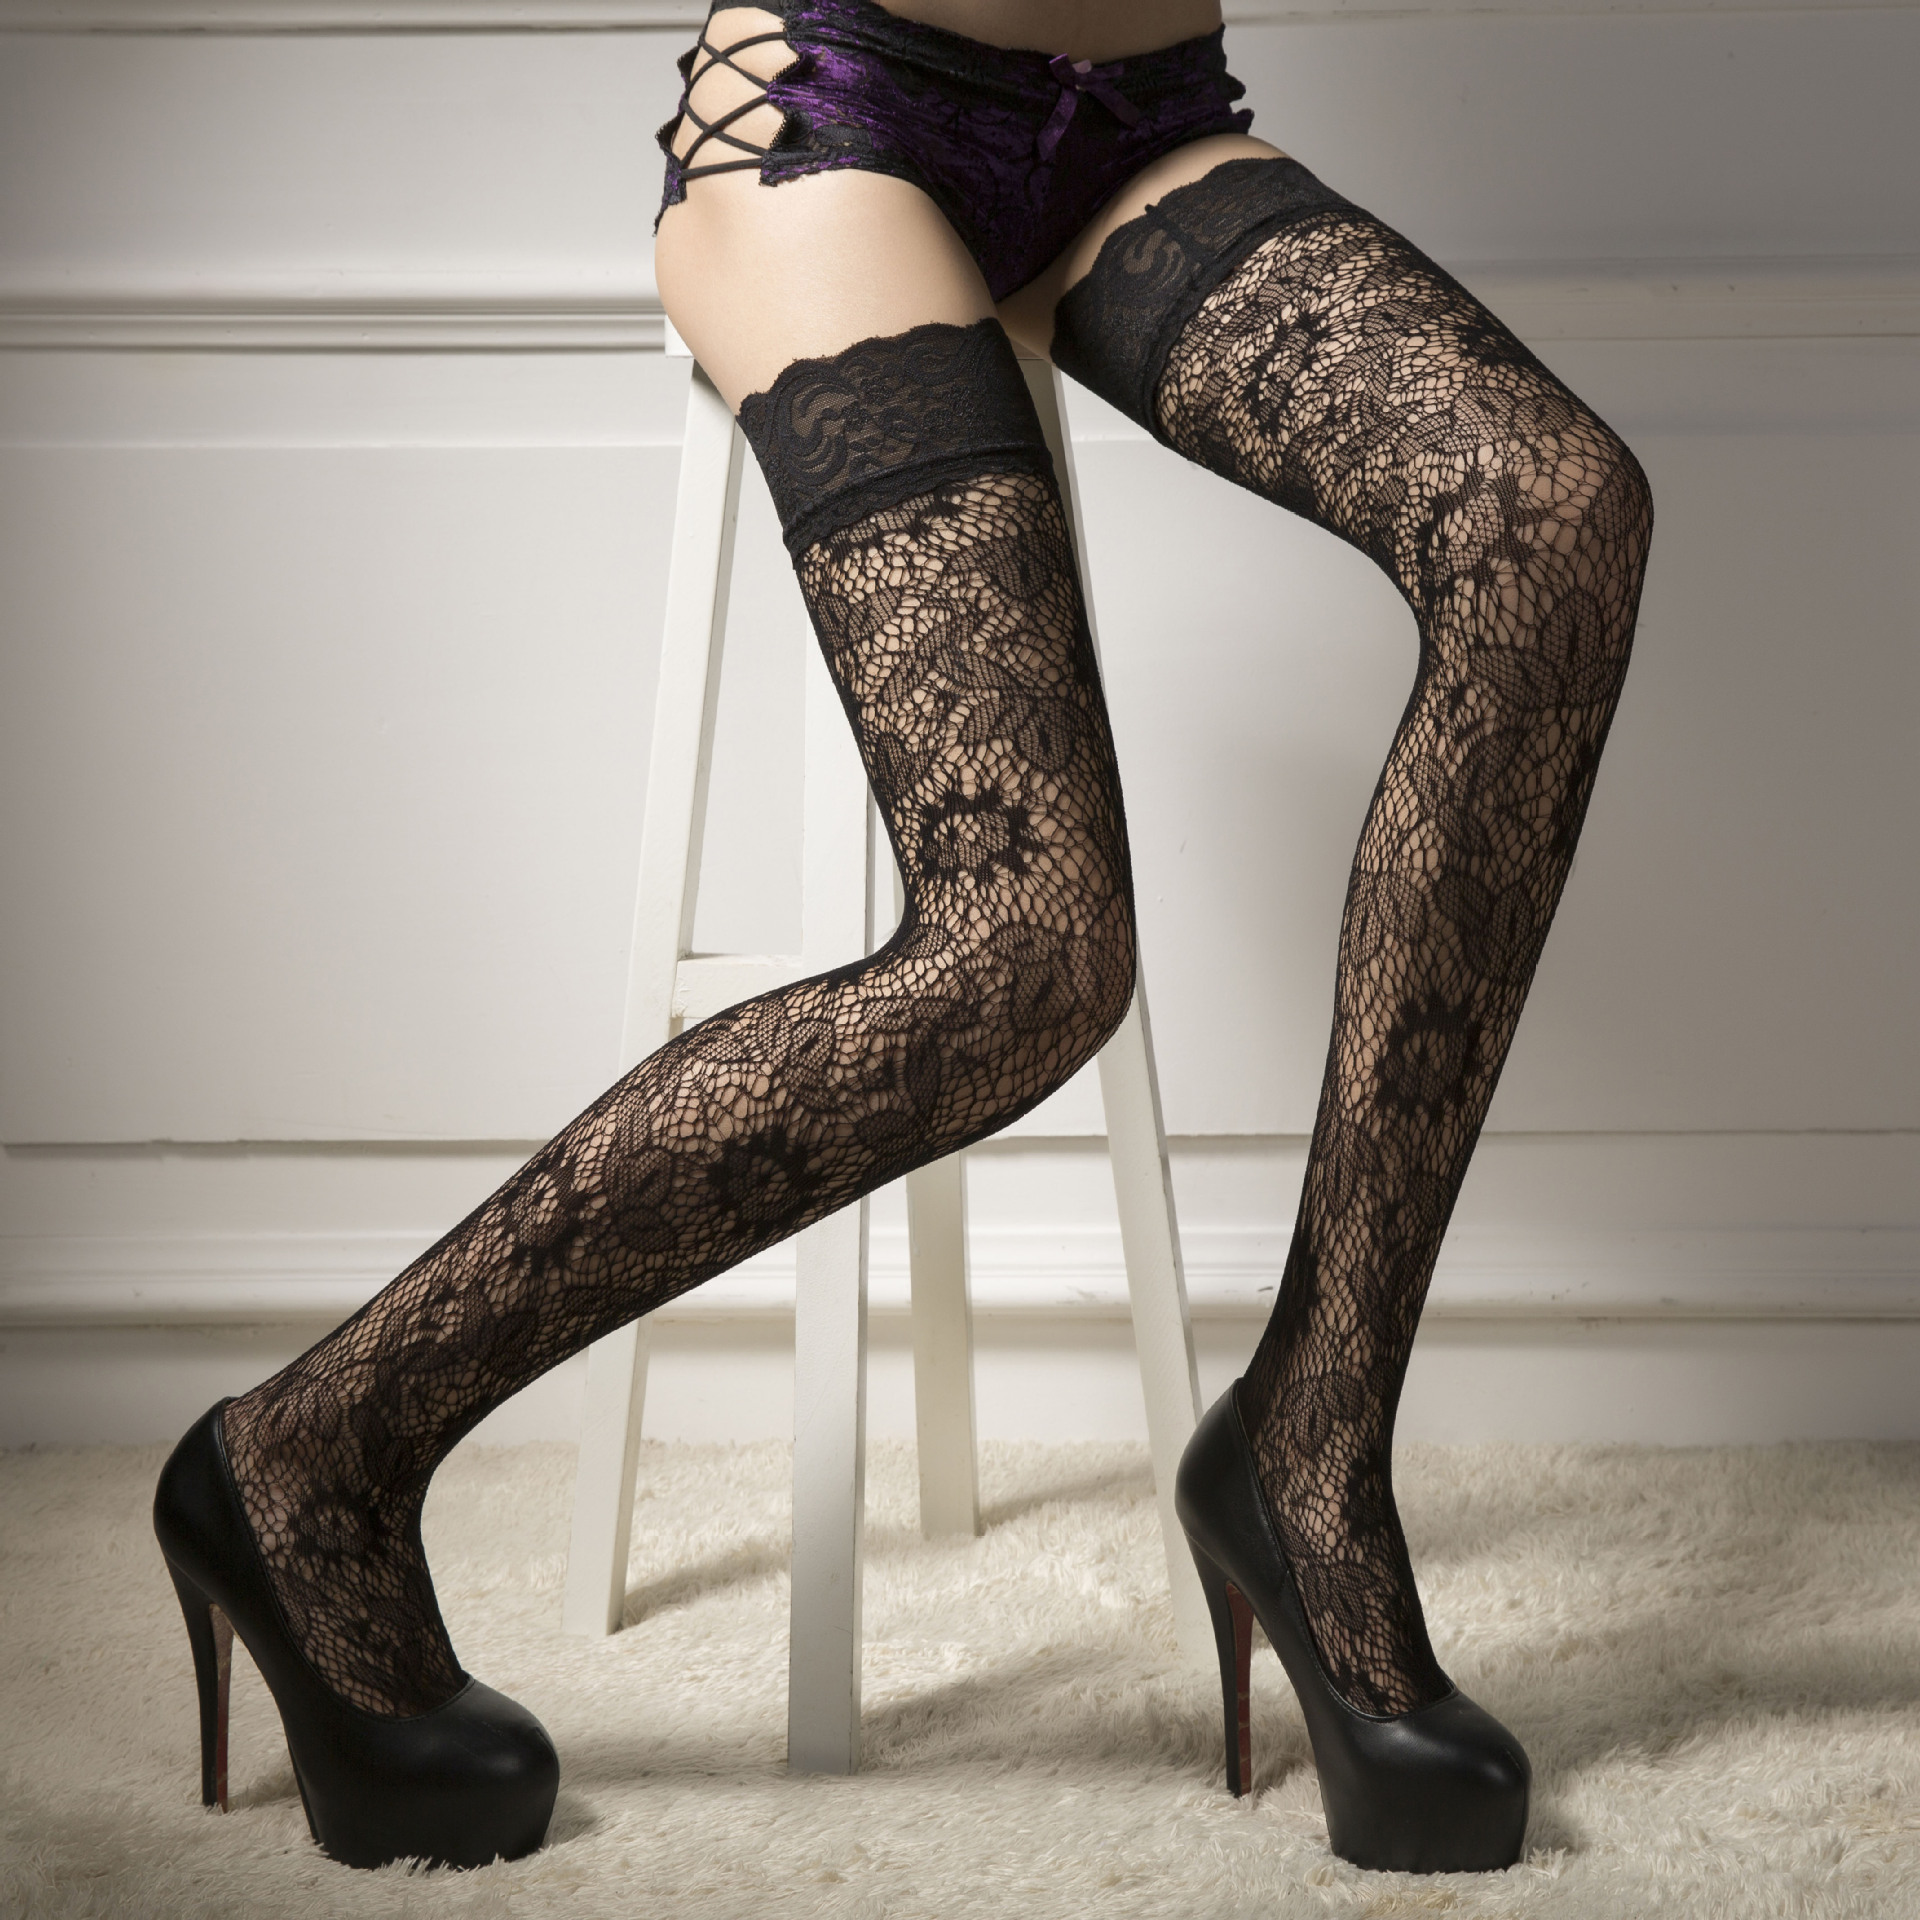 NEST 2 Pairs/Lot 2018 Women Sexy Black Lace Stockings Summer Nightclub Stockings Free Size Elasticity Stockings